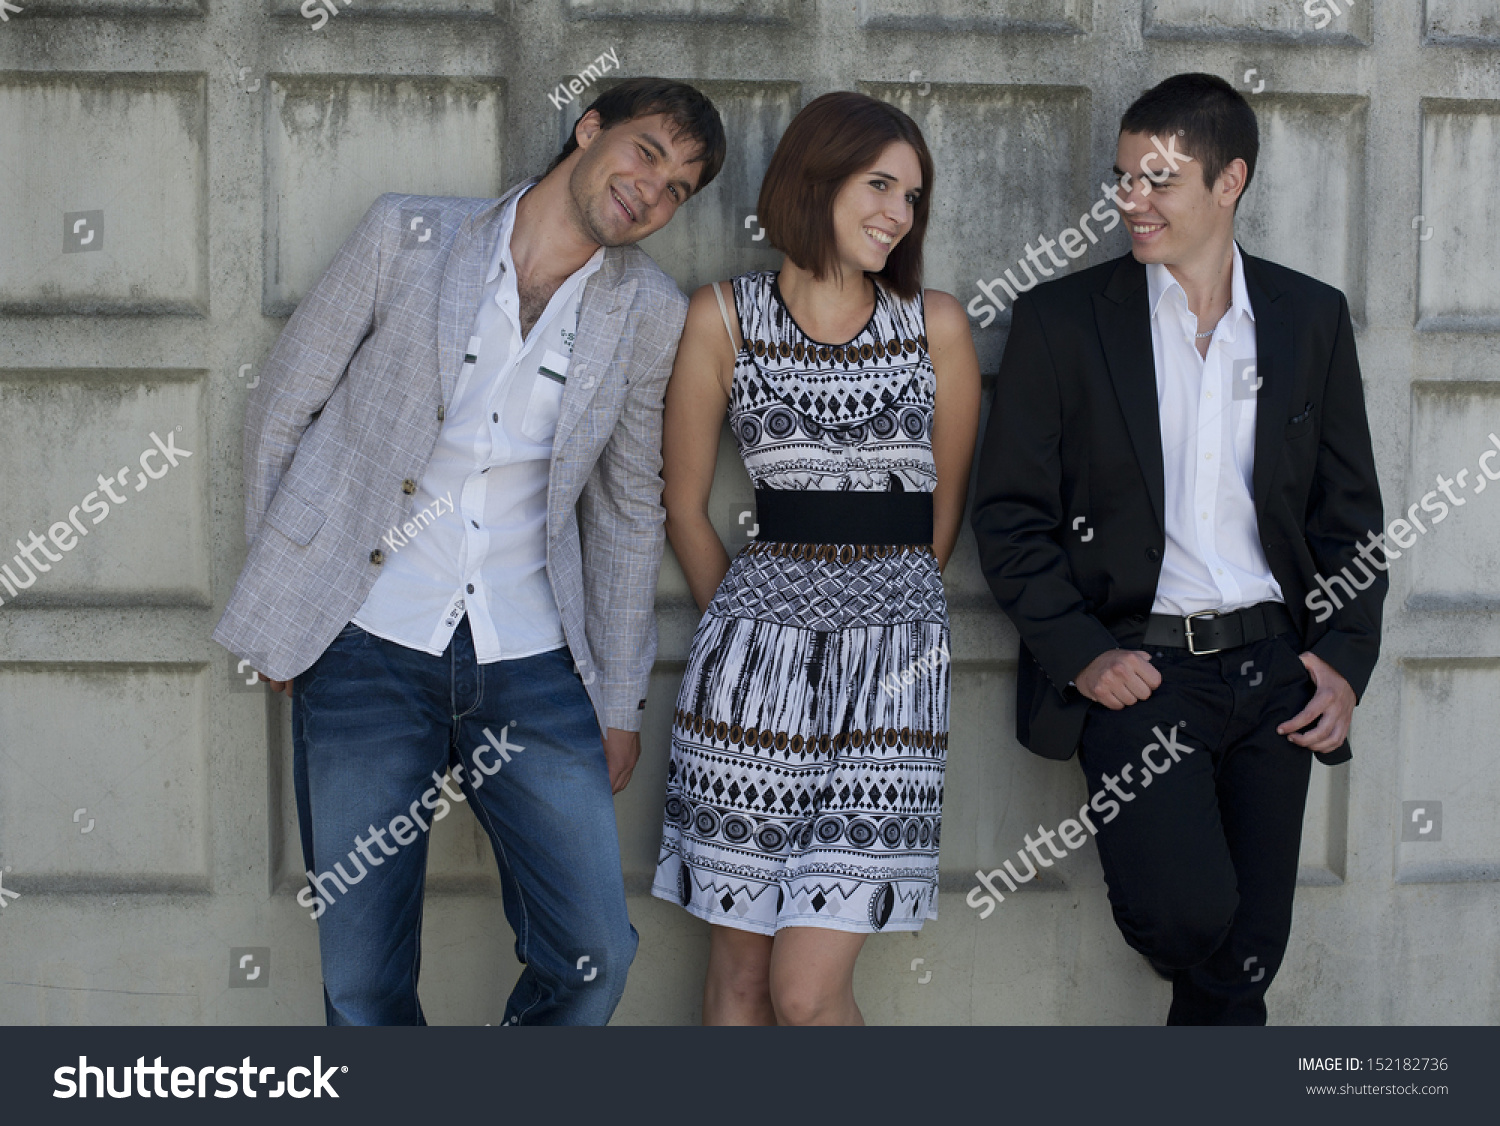 Image result for two boys and a girl